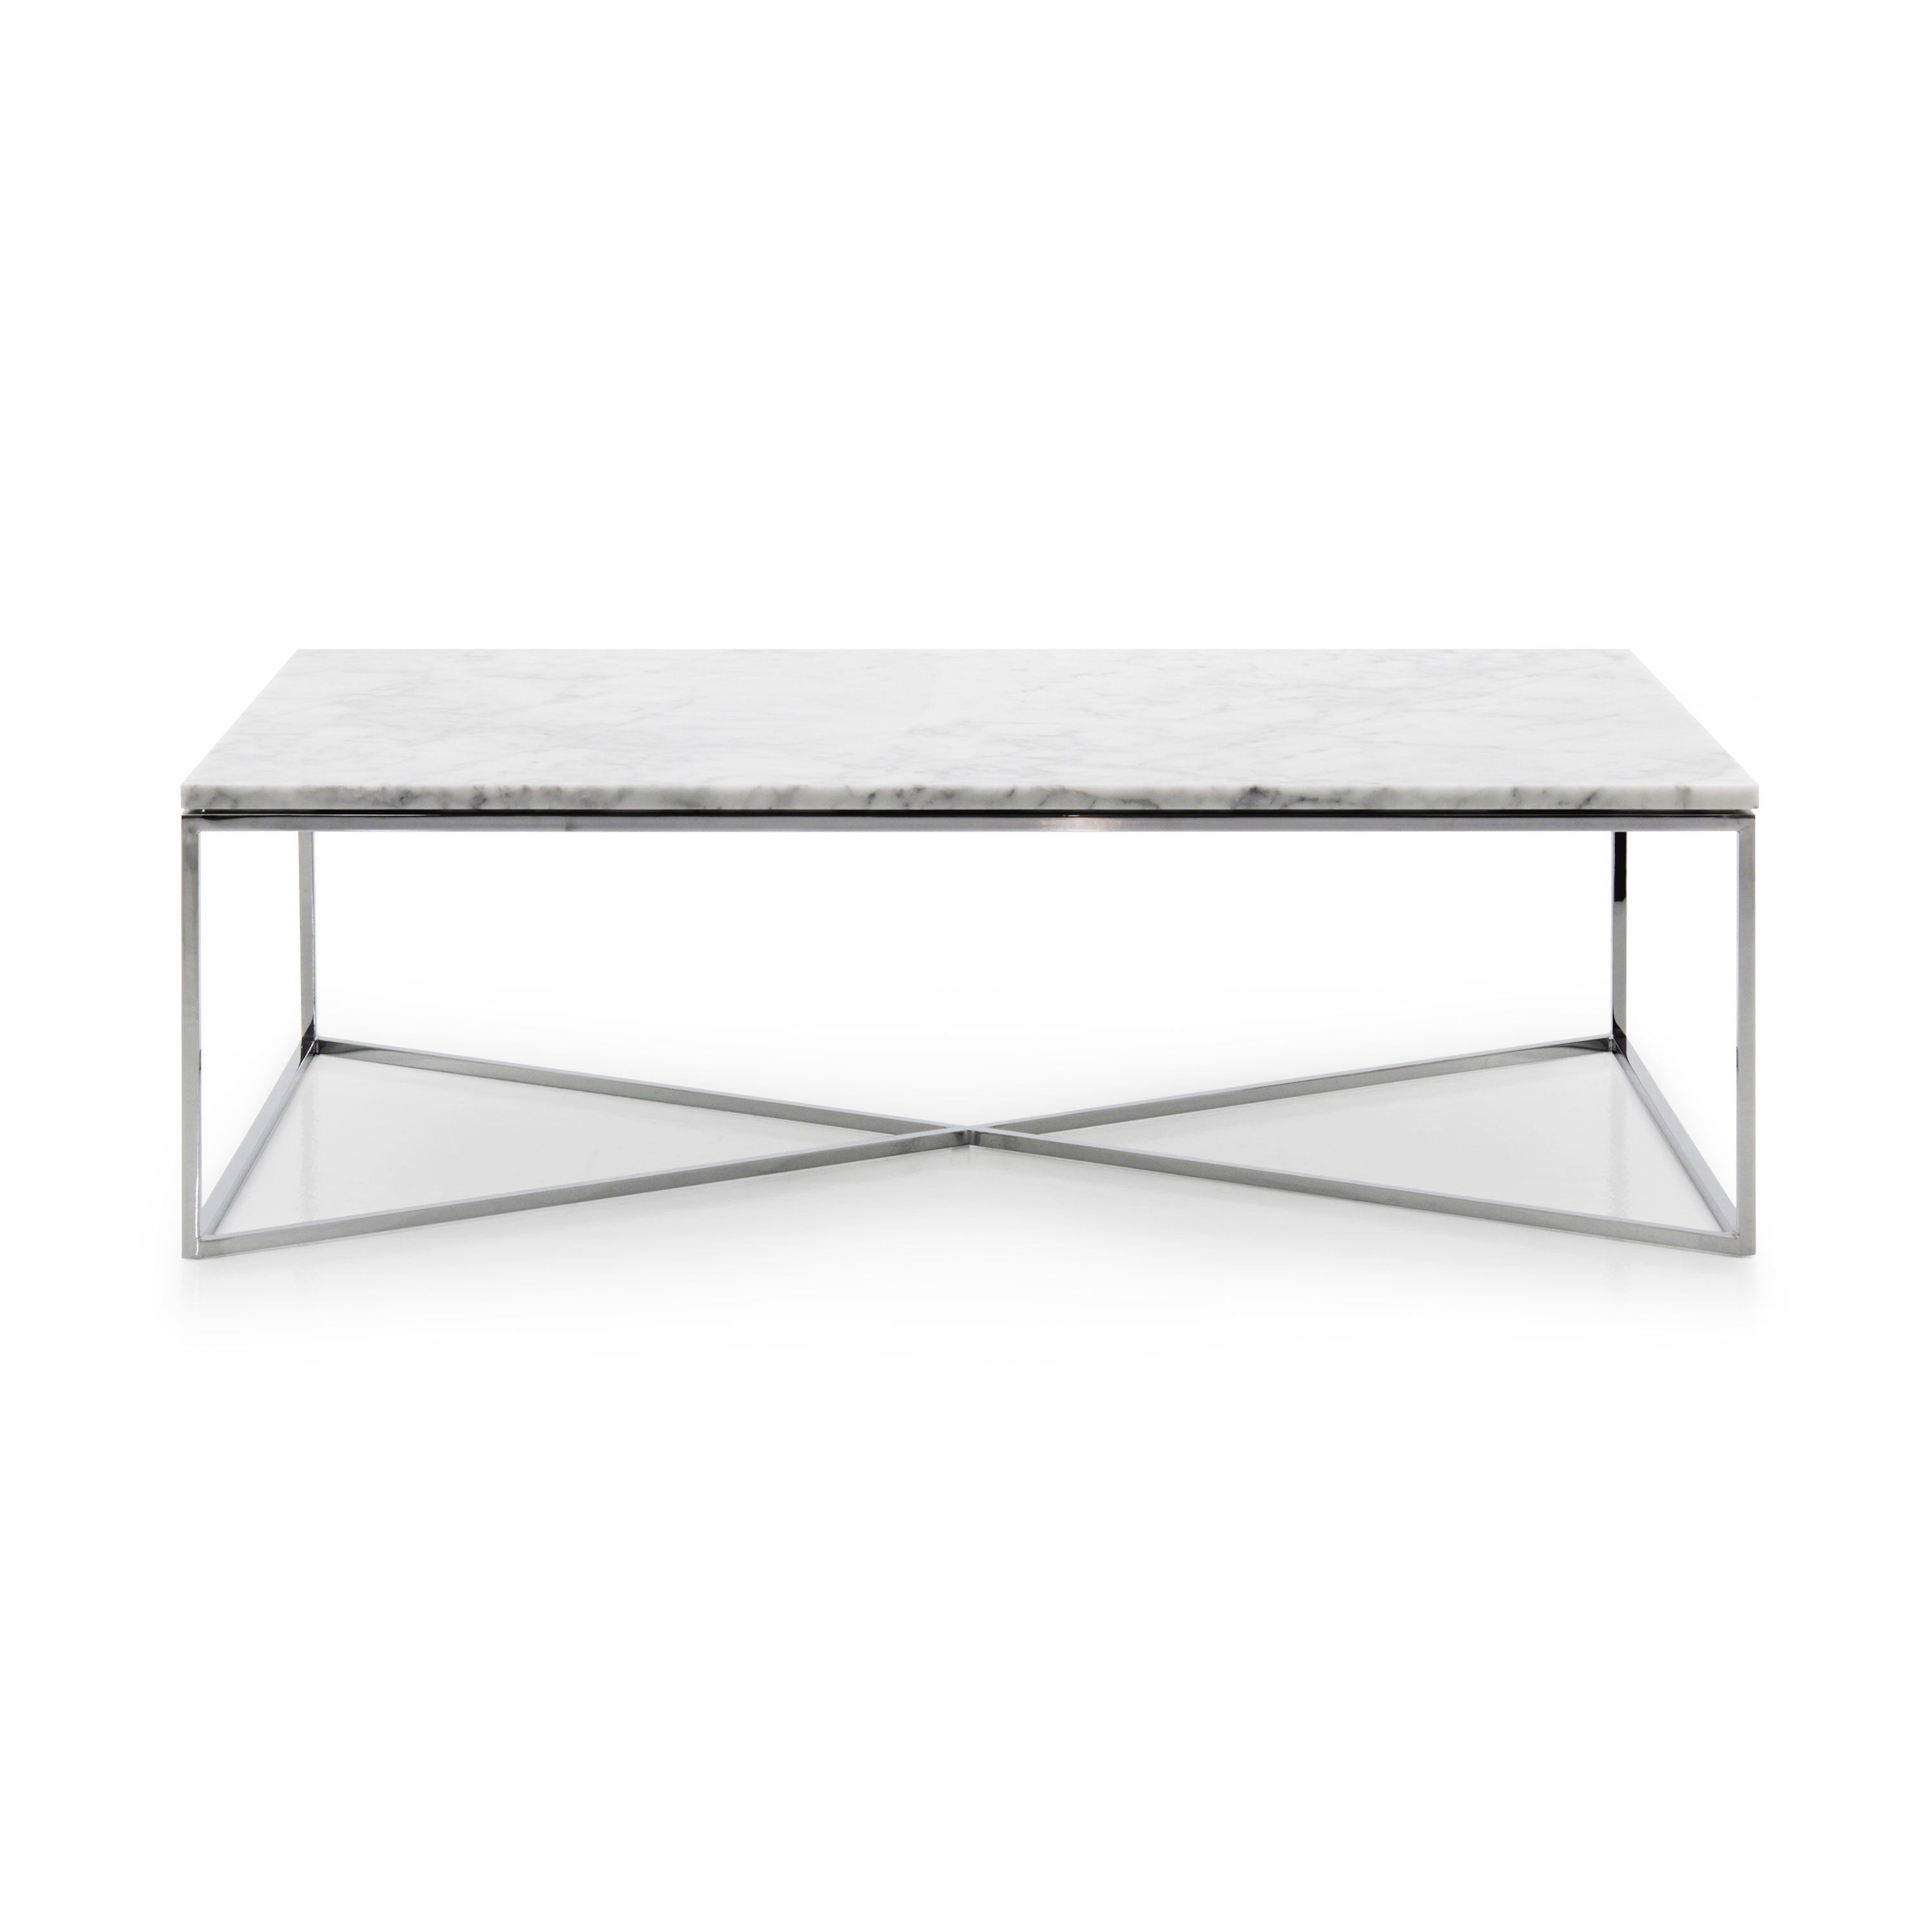 Wondrous Modern Style Marble Top Coffee Table Klepsidra Sevensedie Evergreenethics Interior Chair Design Evergreenethicsorg